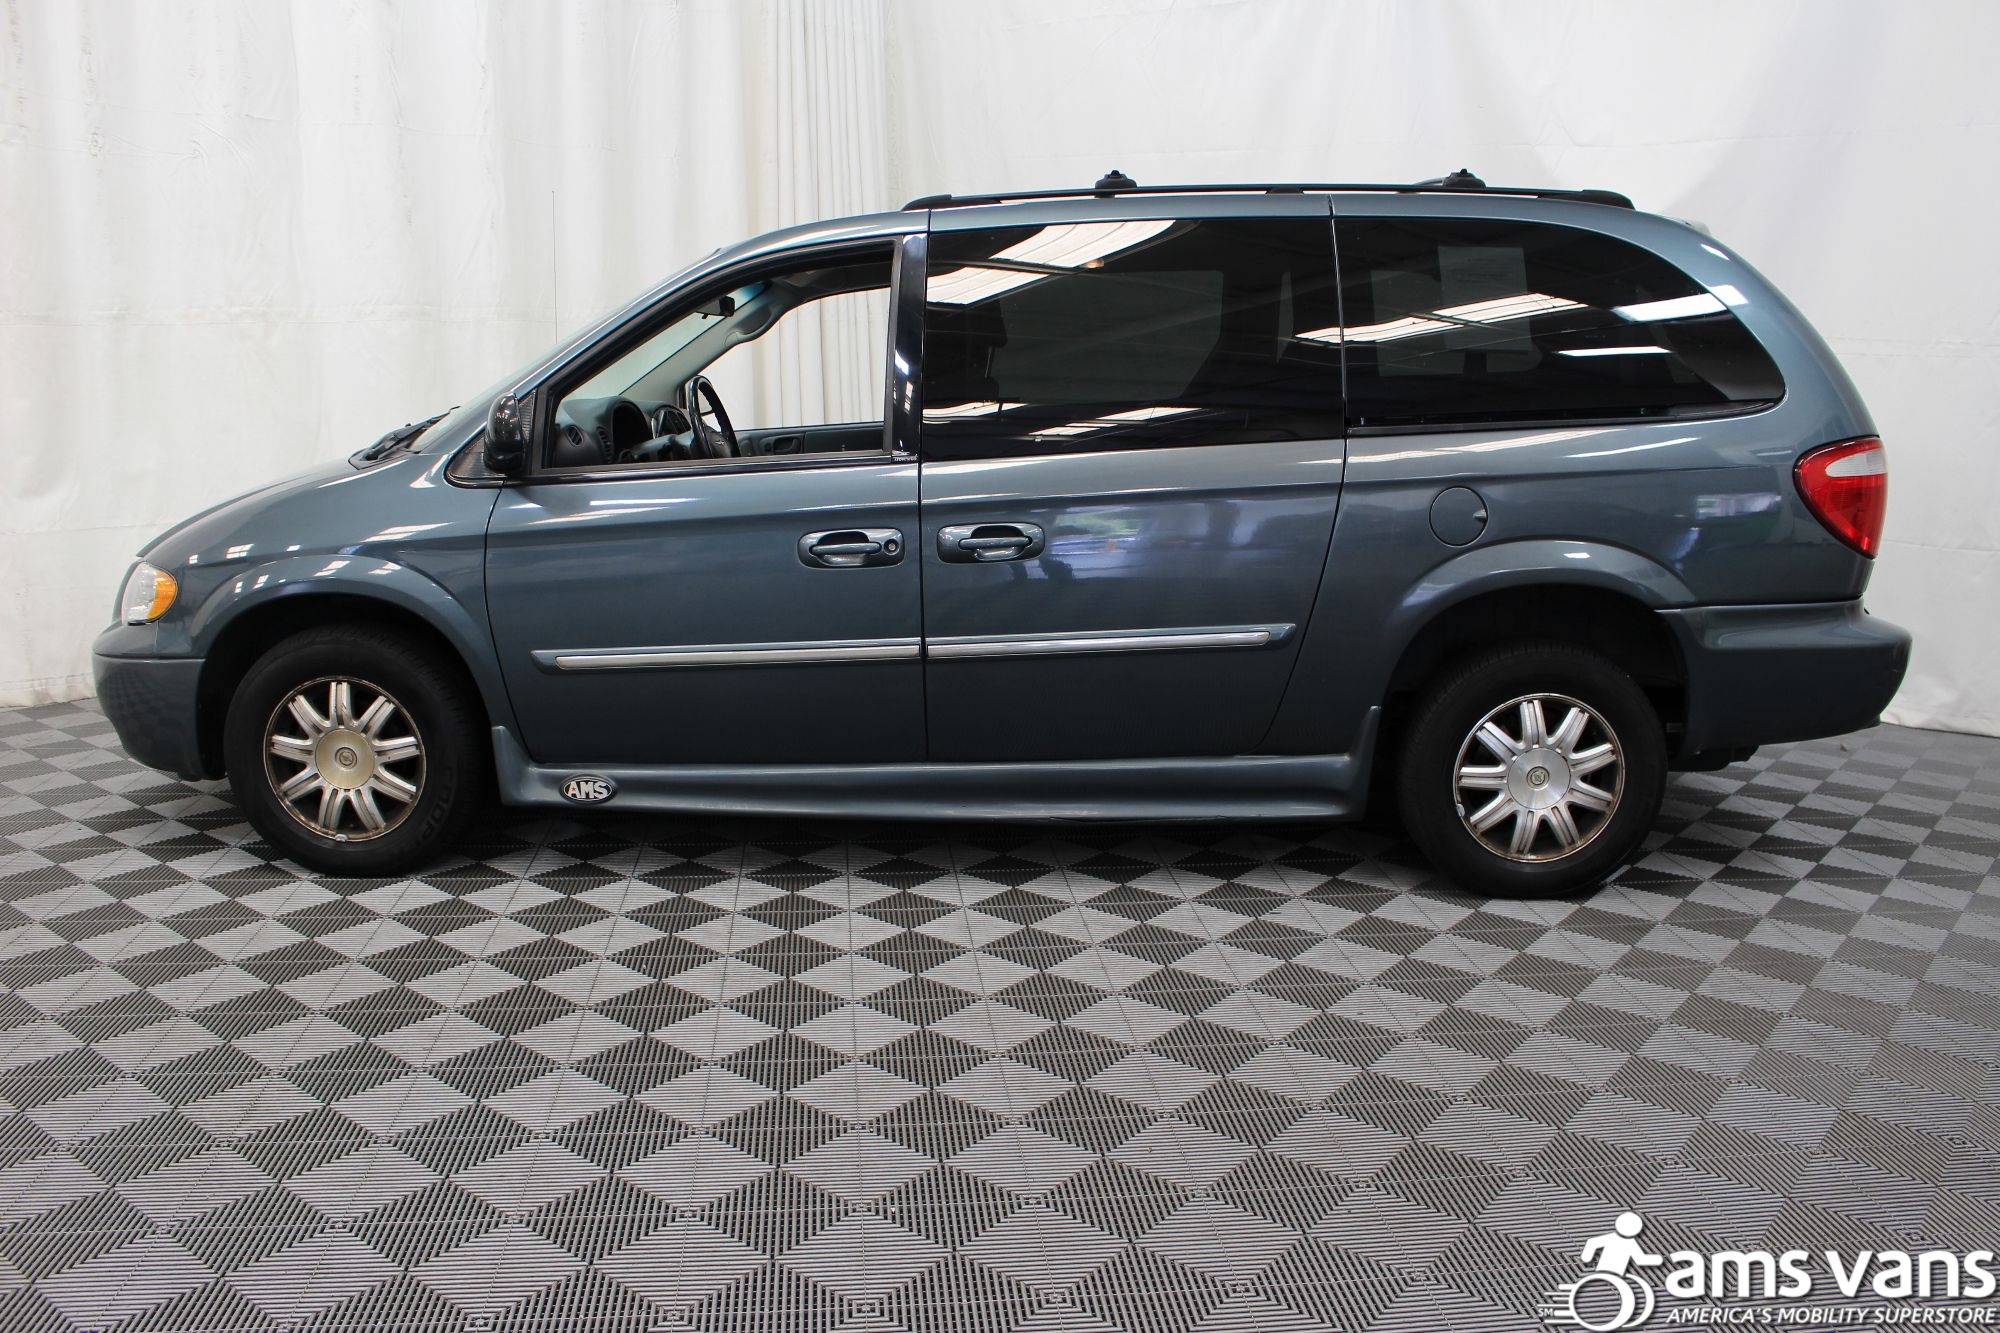 2005 Chrysler Town and Country Touring Wheelchair Van For Sale #9